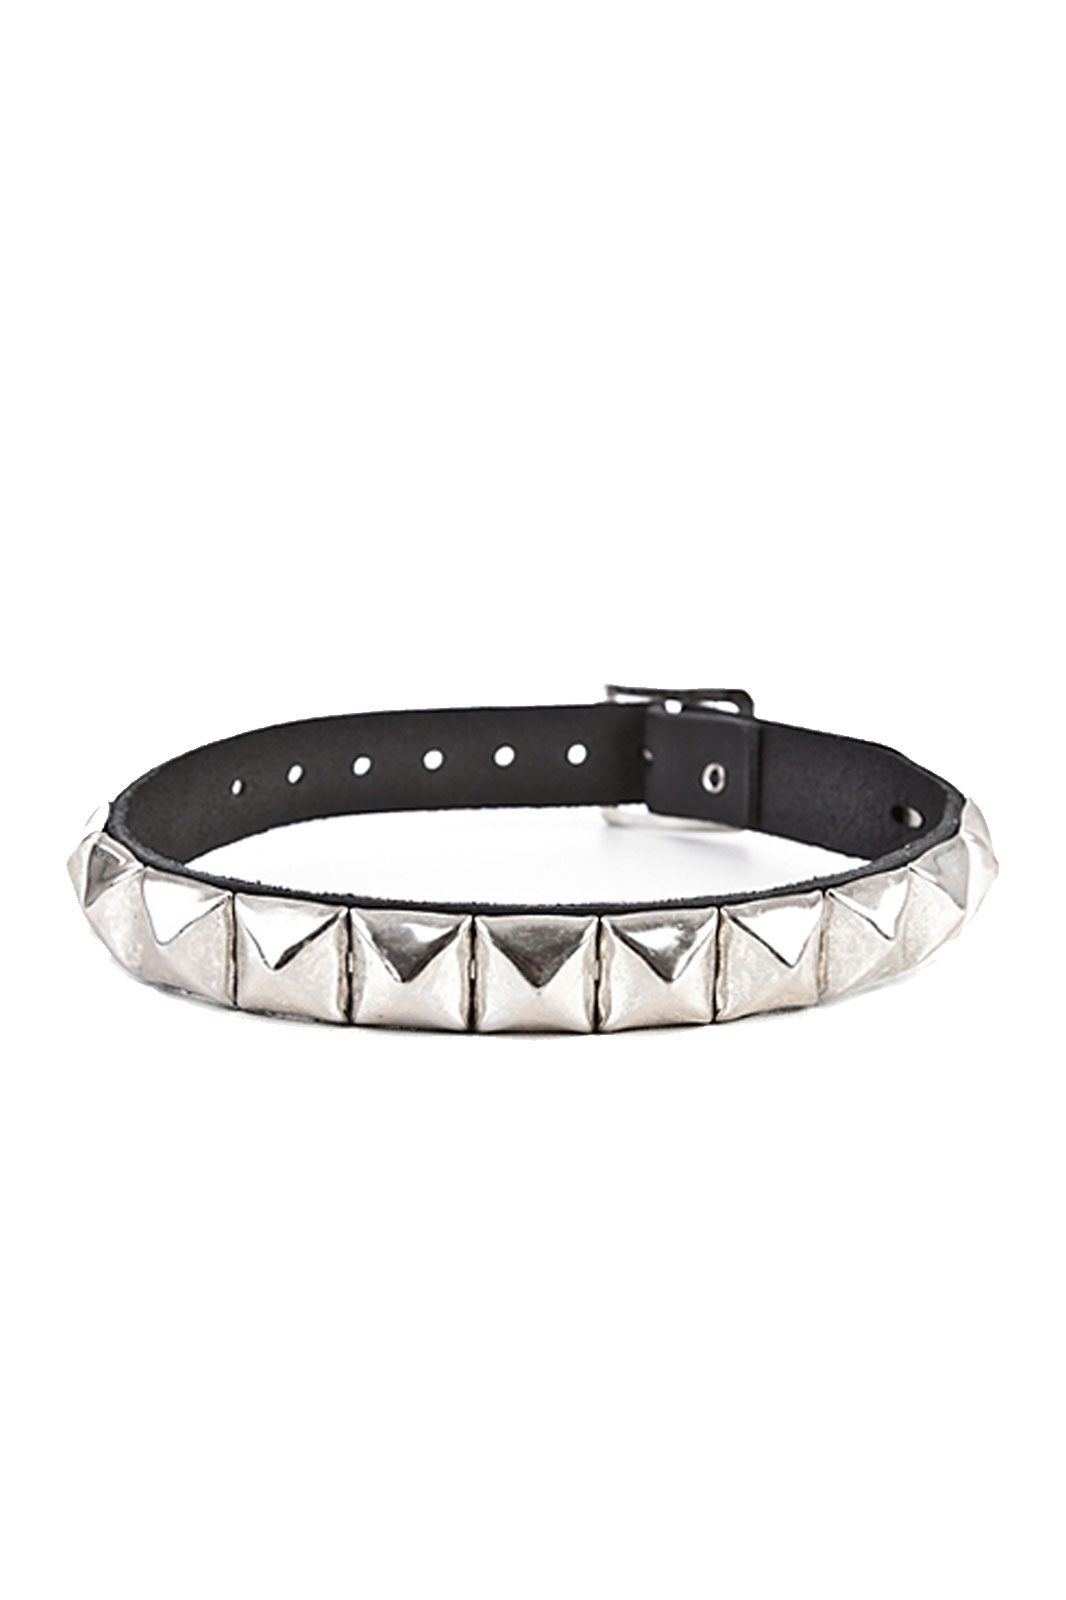 randomizer 1-row pyramid leather choker black